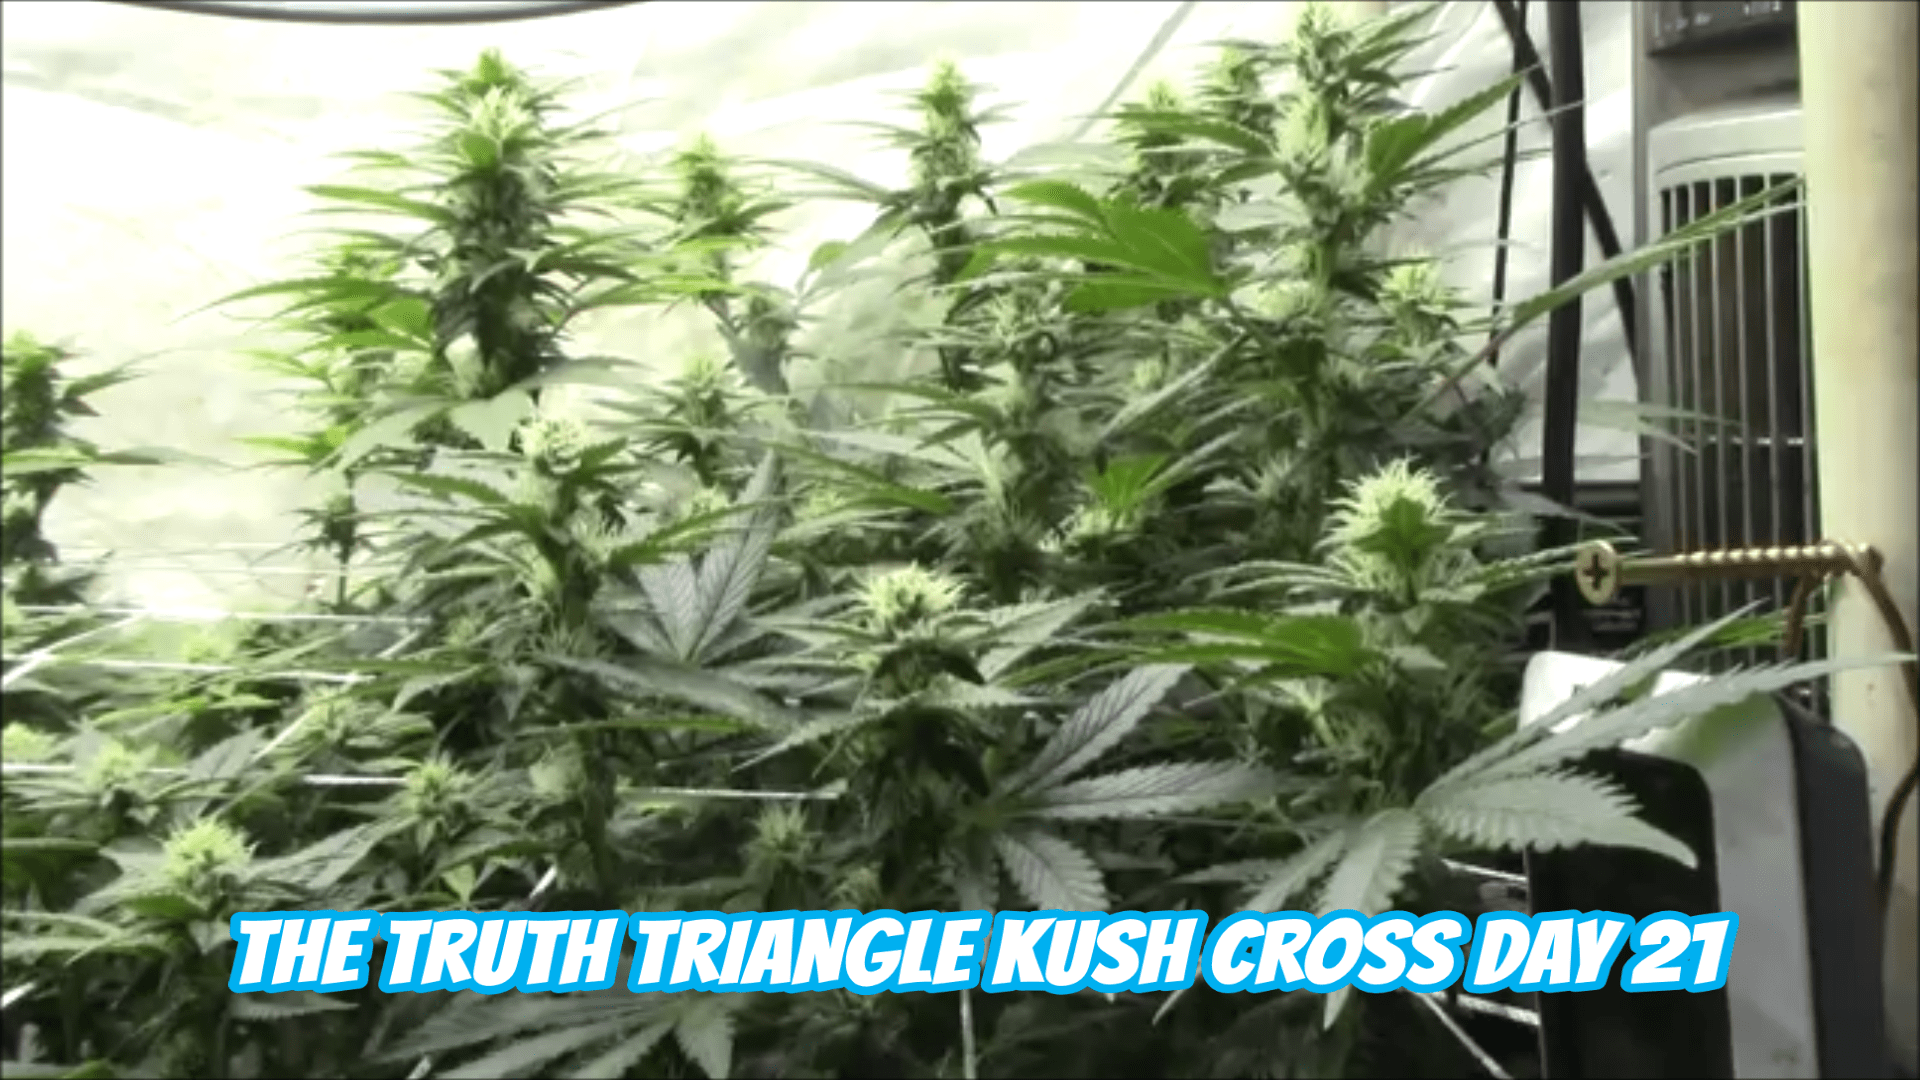 THE TRUTH TRIANGLE KUSH CROSS DAY 21